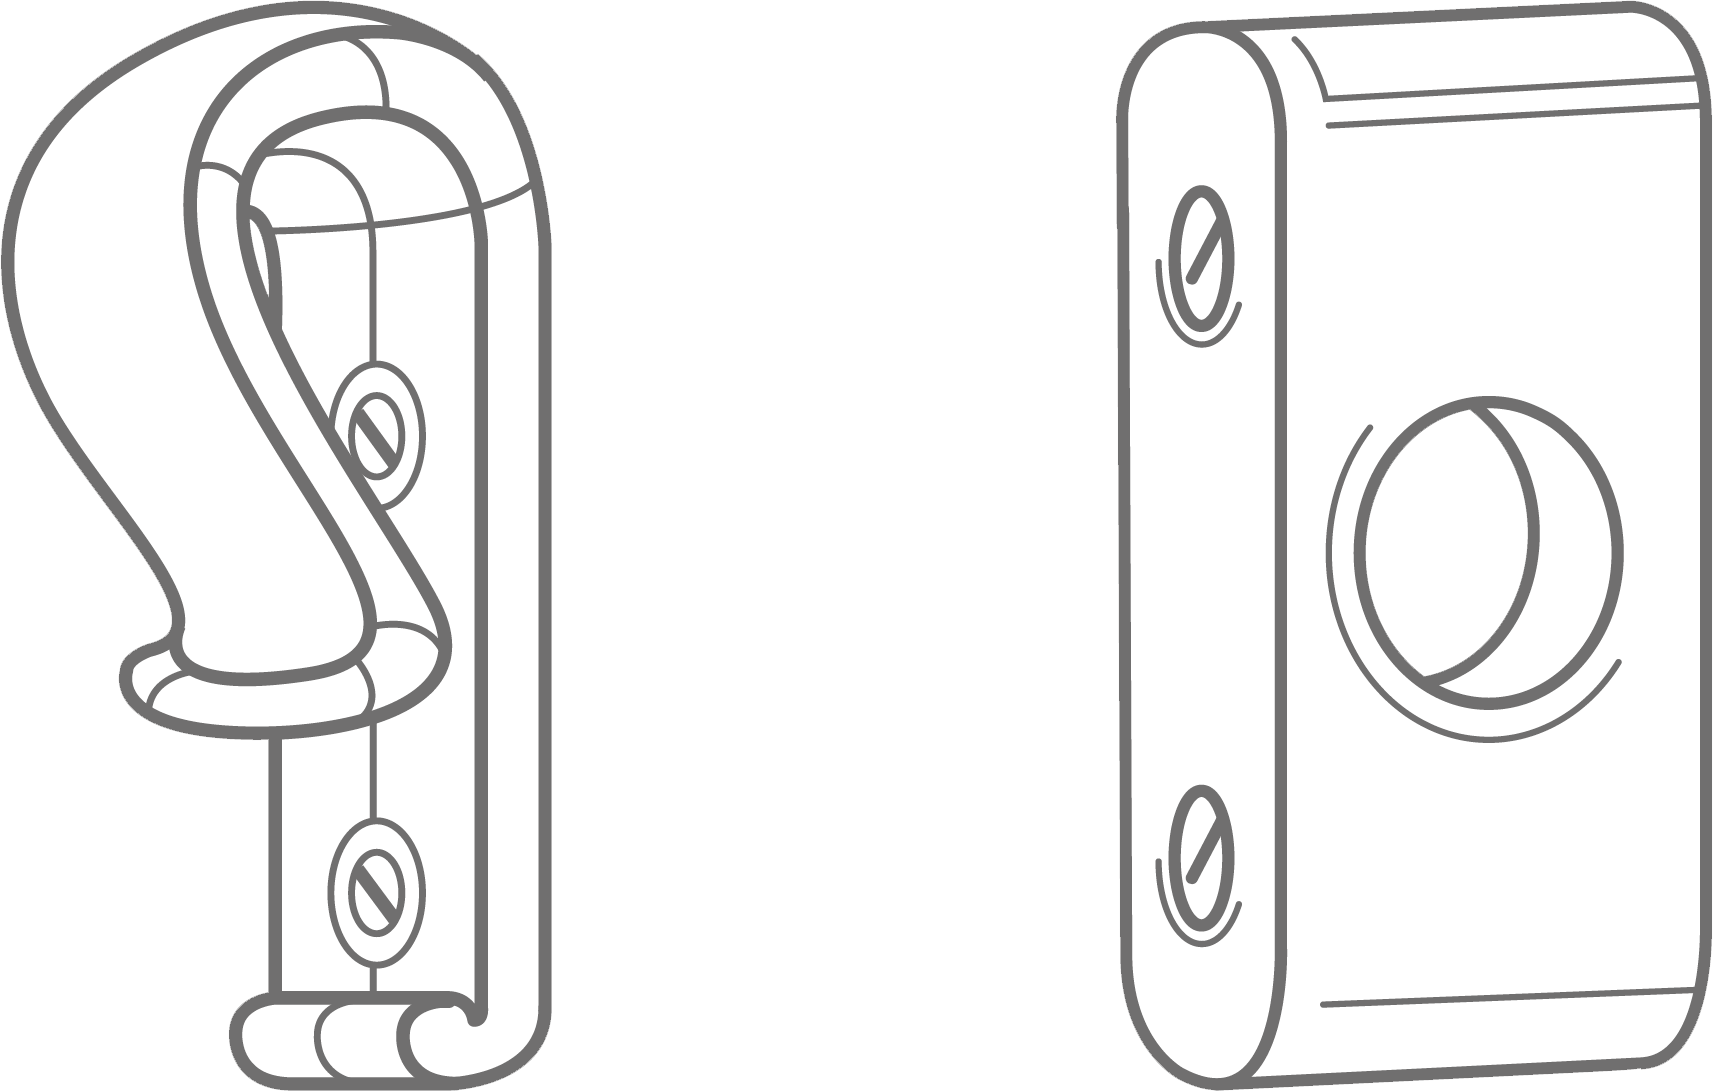 The outline of a child safety clip